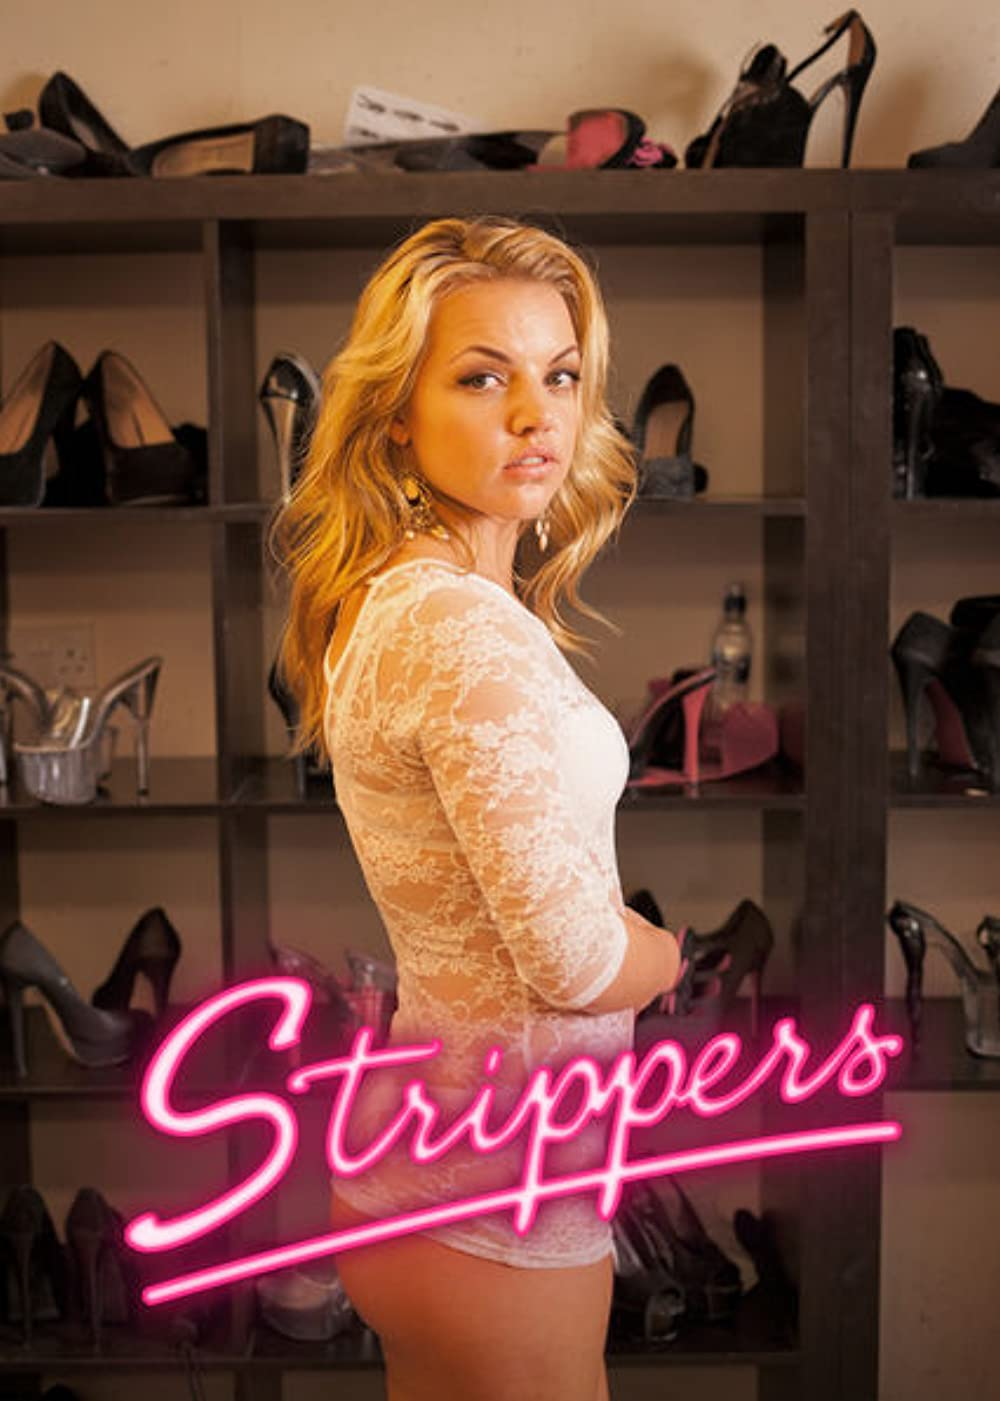 Strippers real life 5 Things